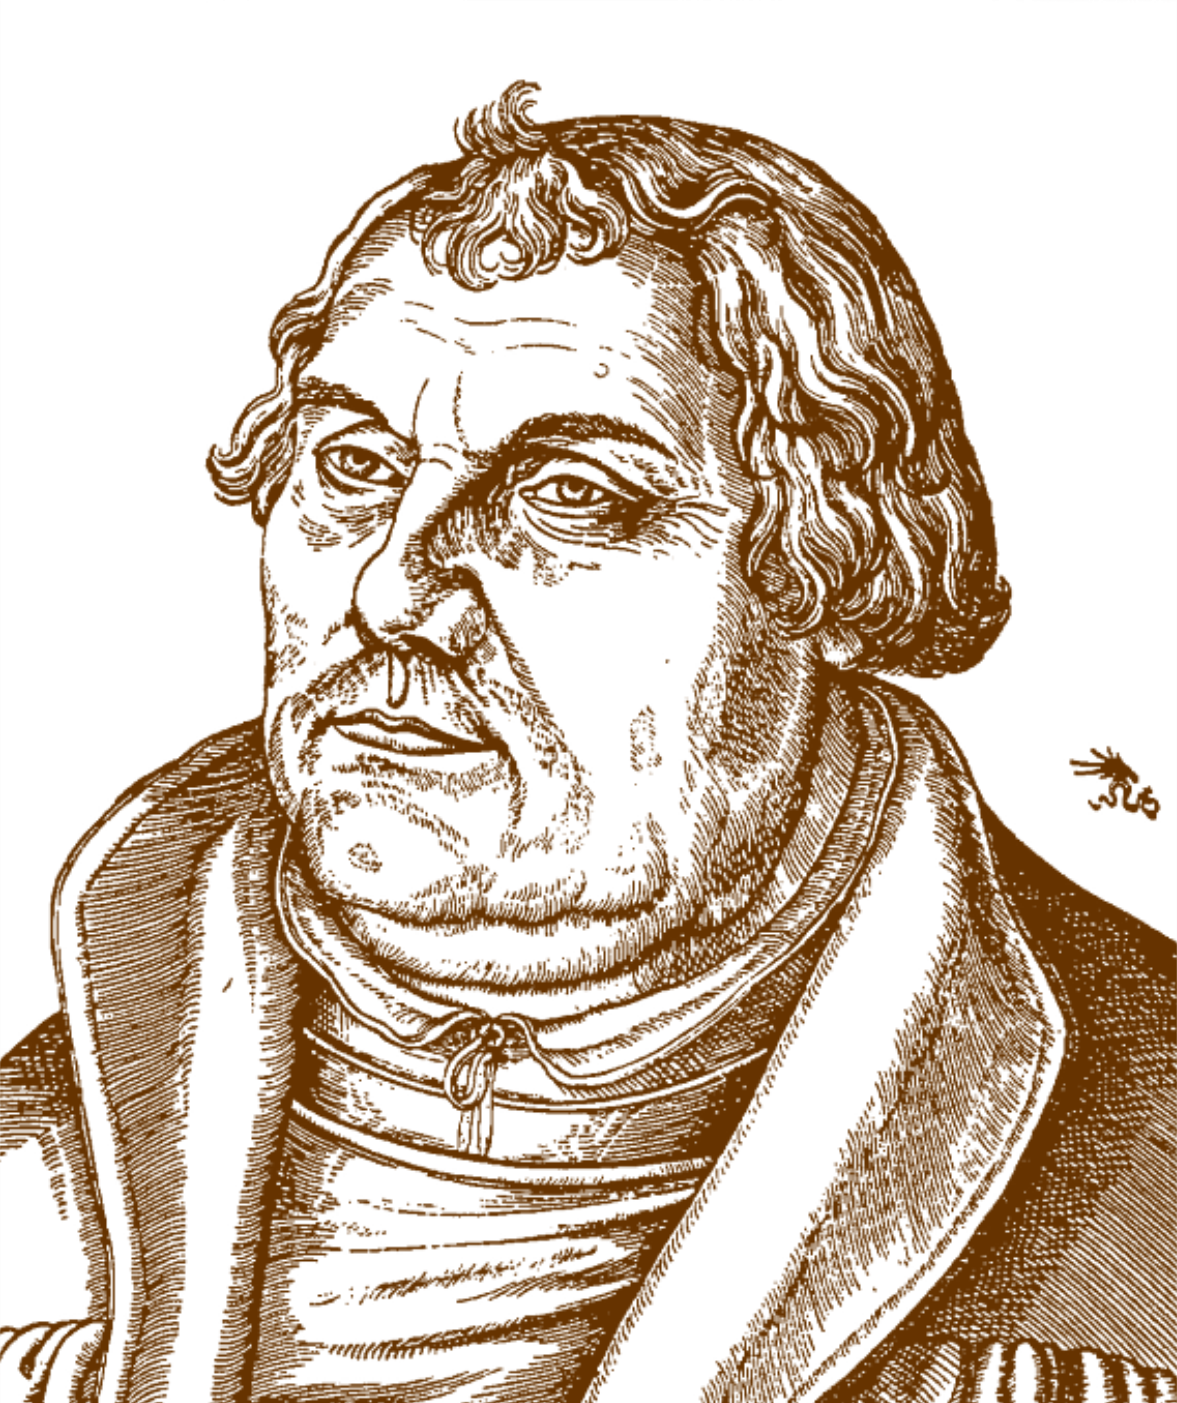 Excerpt from the Formula of Concord on Martin Luther